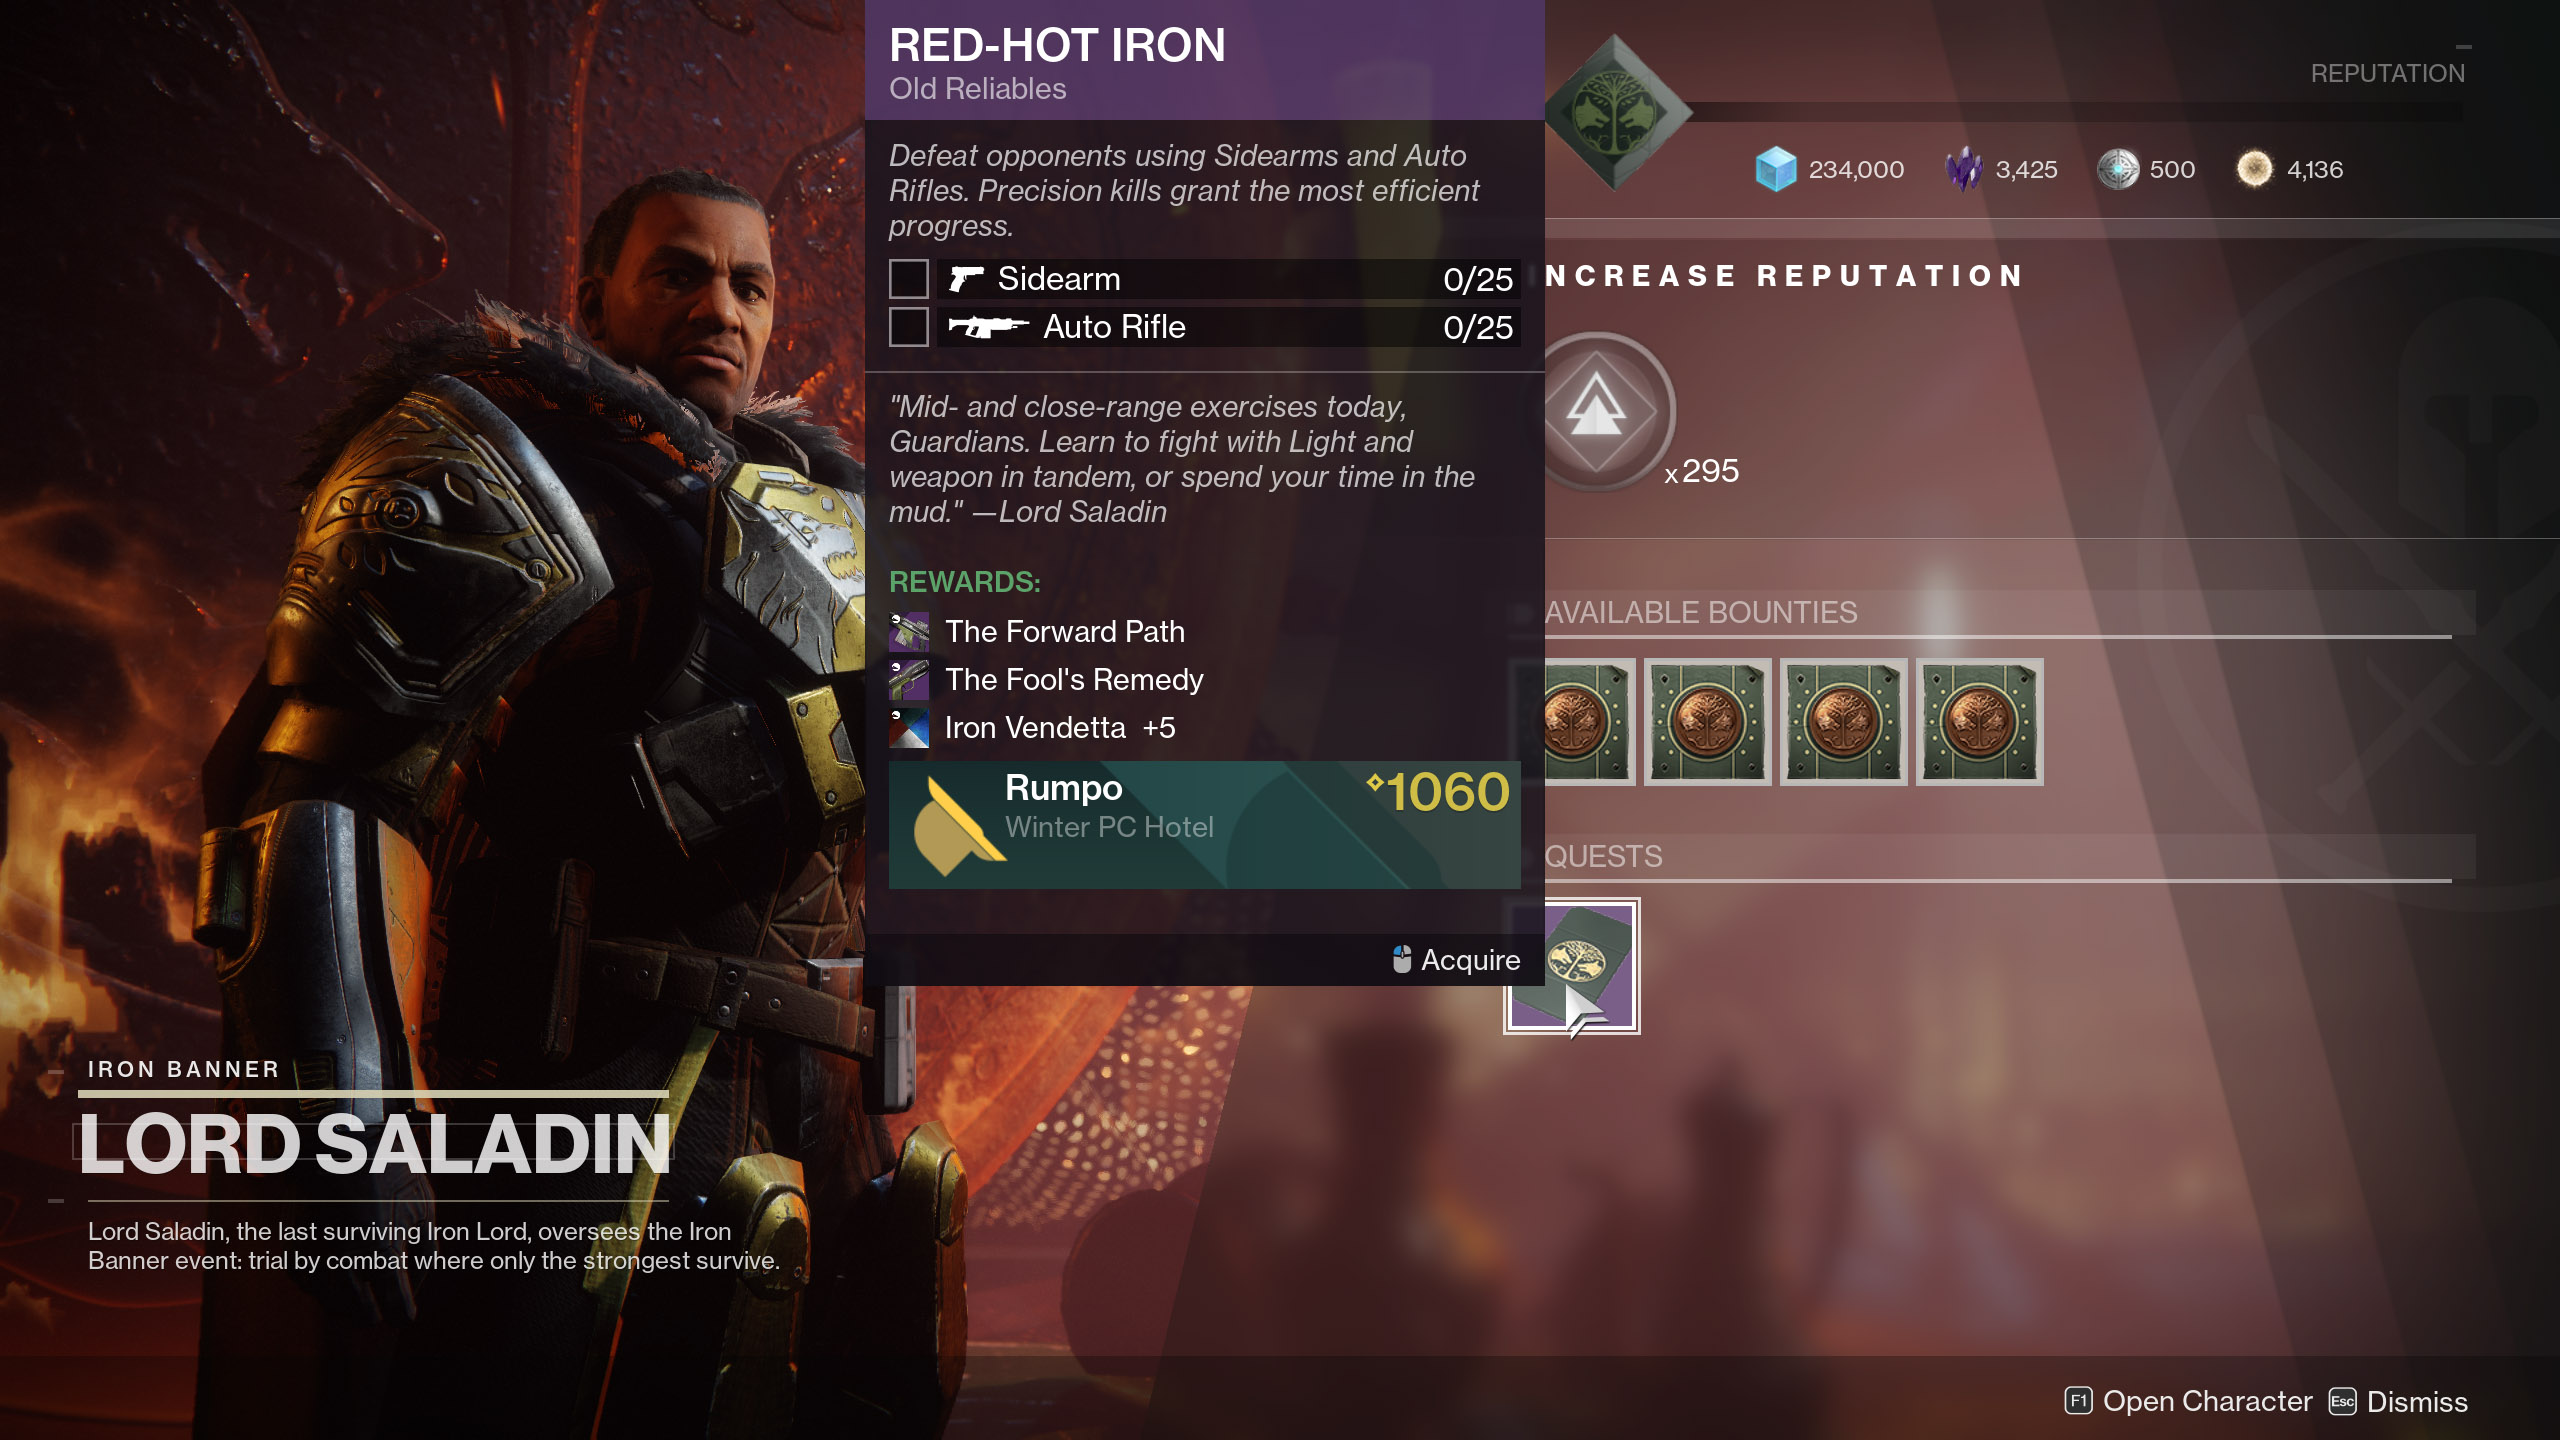 Iron Banner Red-Hot Iron Quest